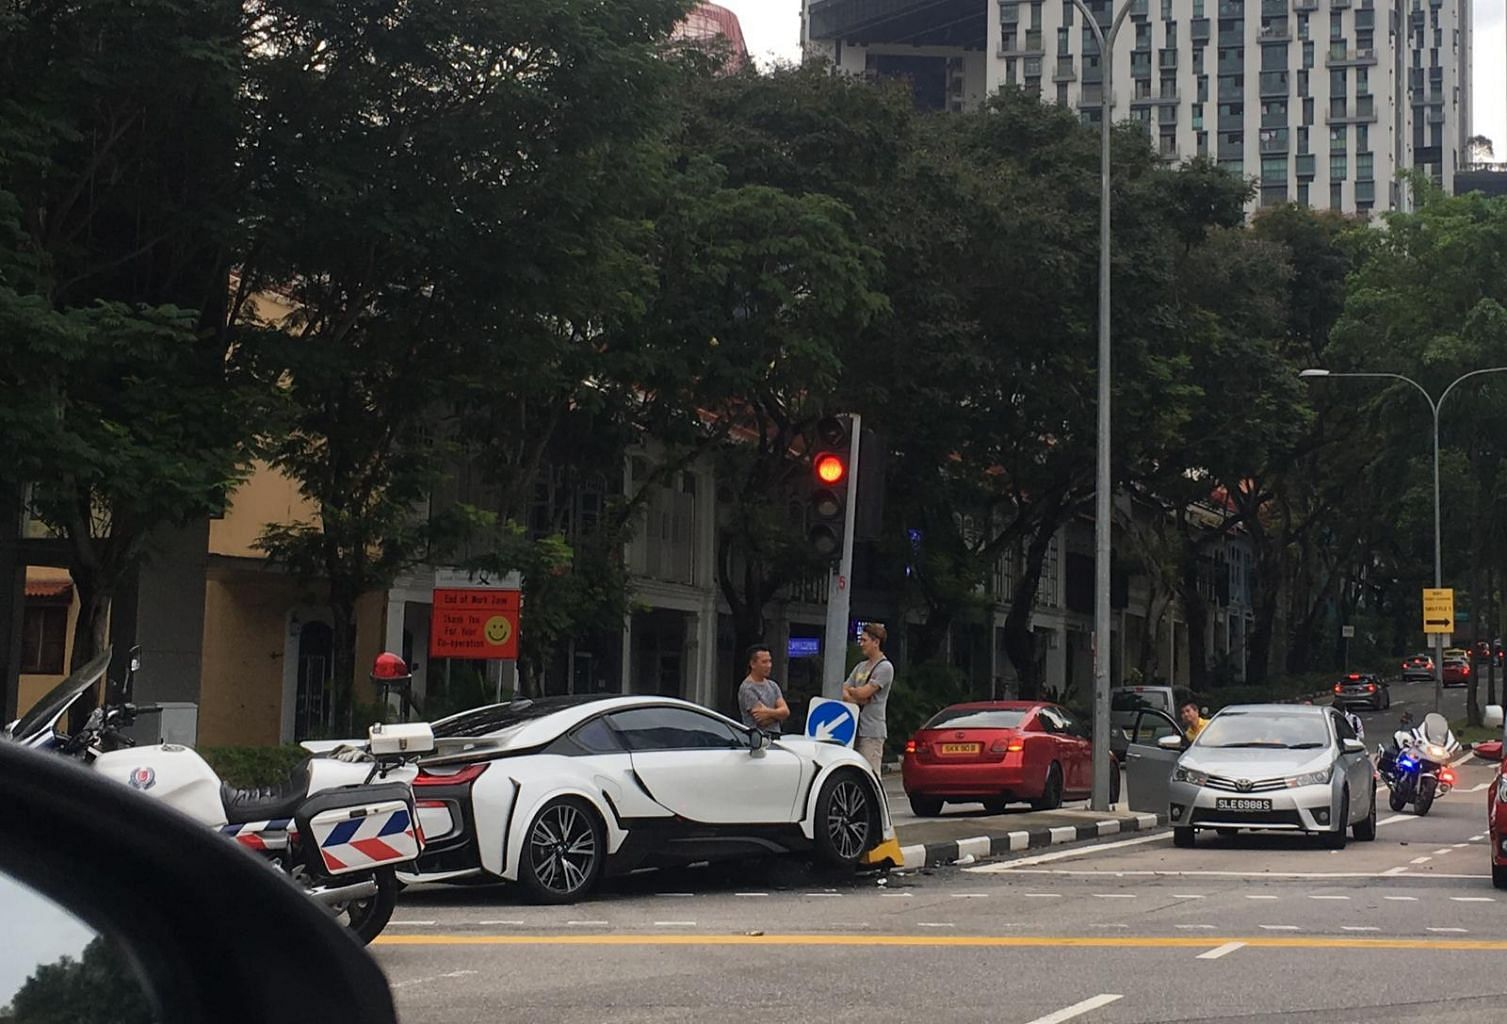 Bmw Sports Car Driver Taken To Hospital After Accident In Cantonment